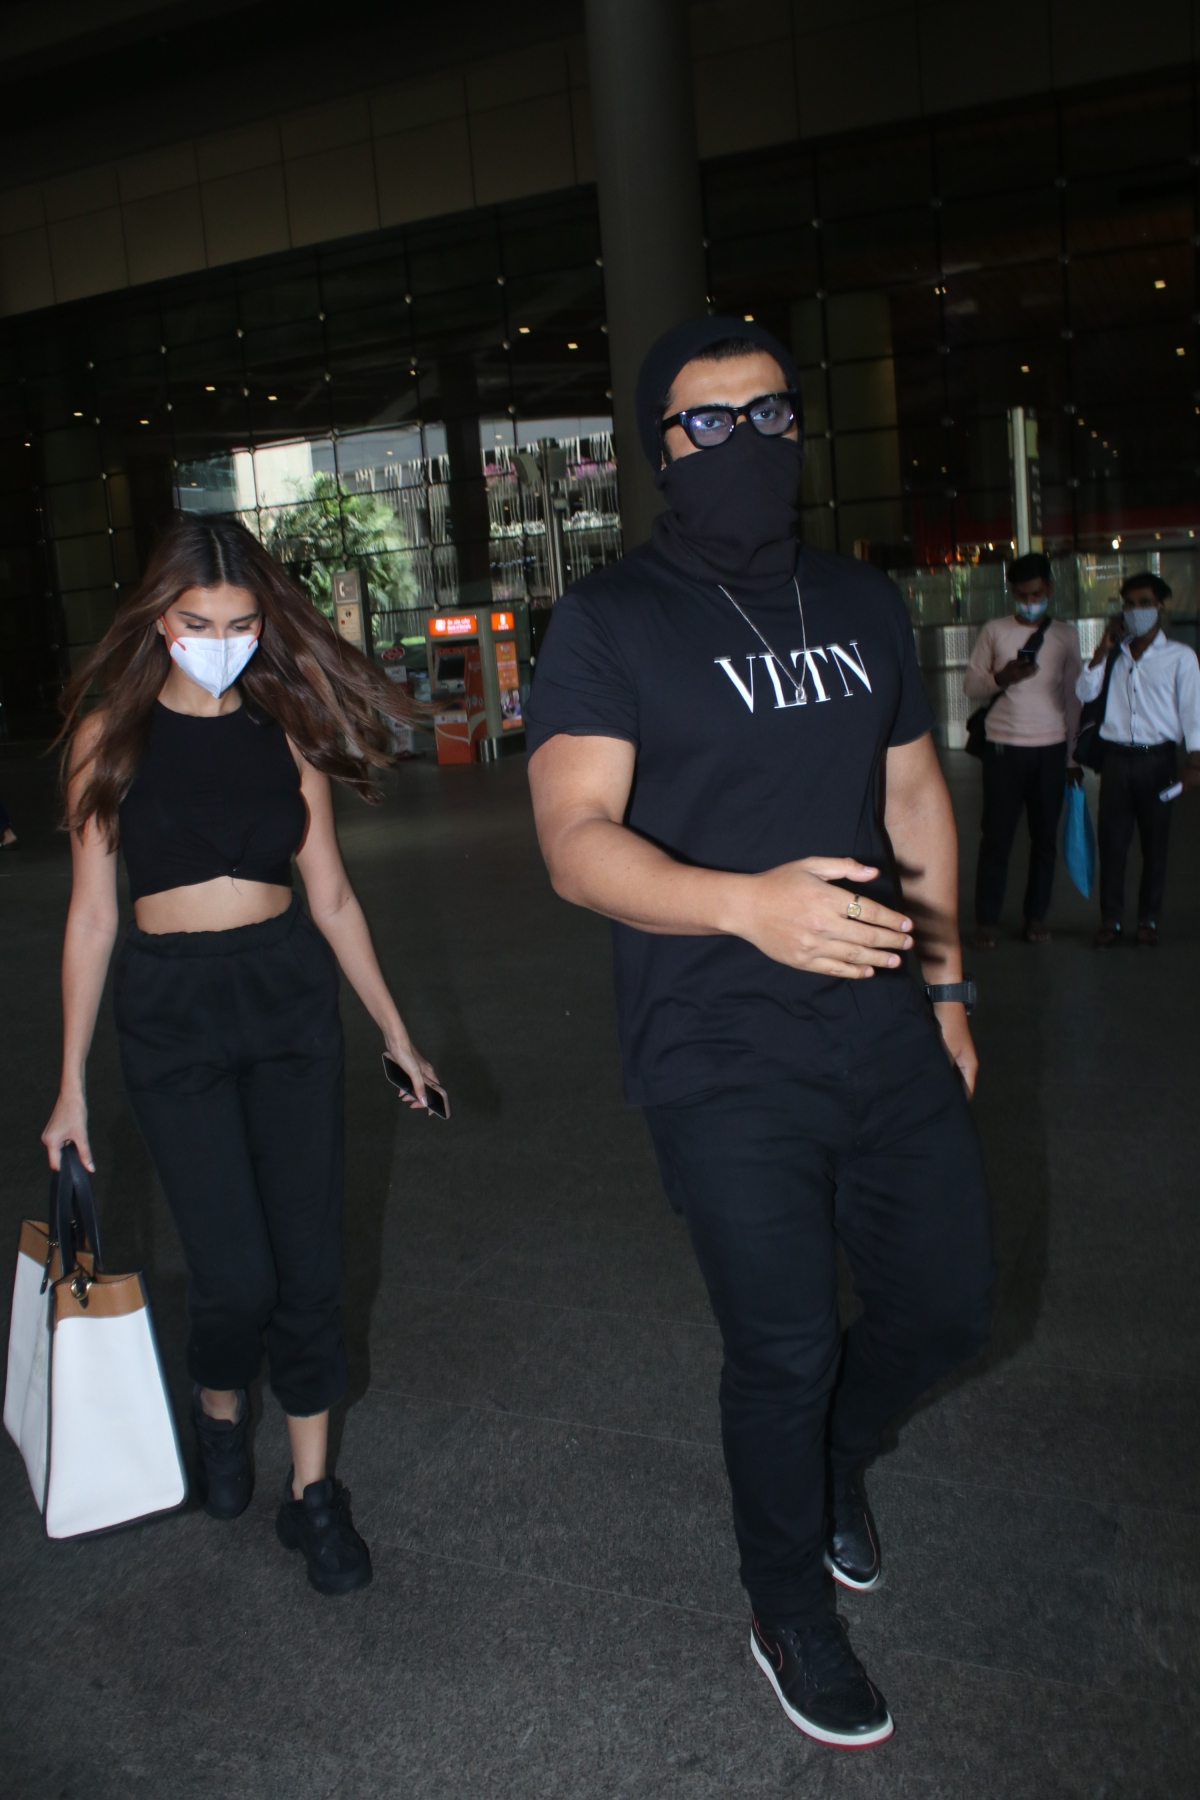 'This isn't essential': Netizens lash out at paparazzi for 'running after' Bollywood celebs amid COVID-19 crisis